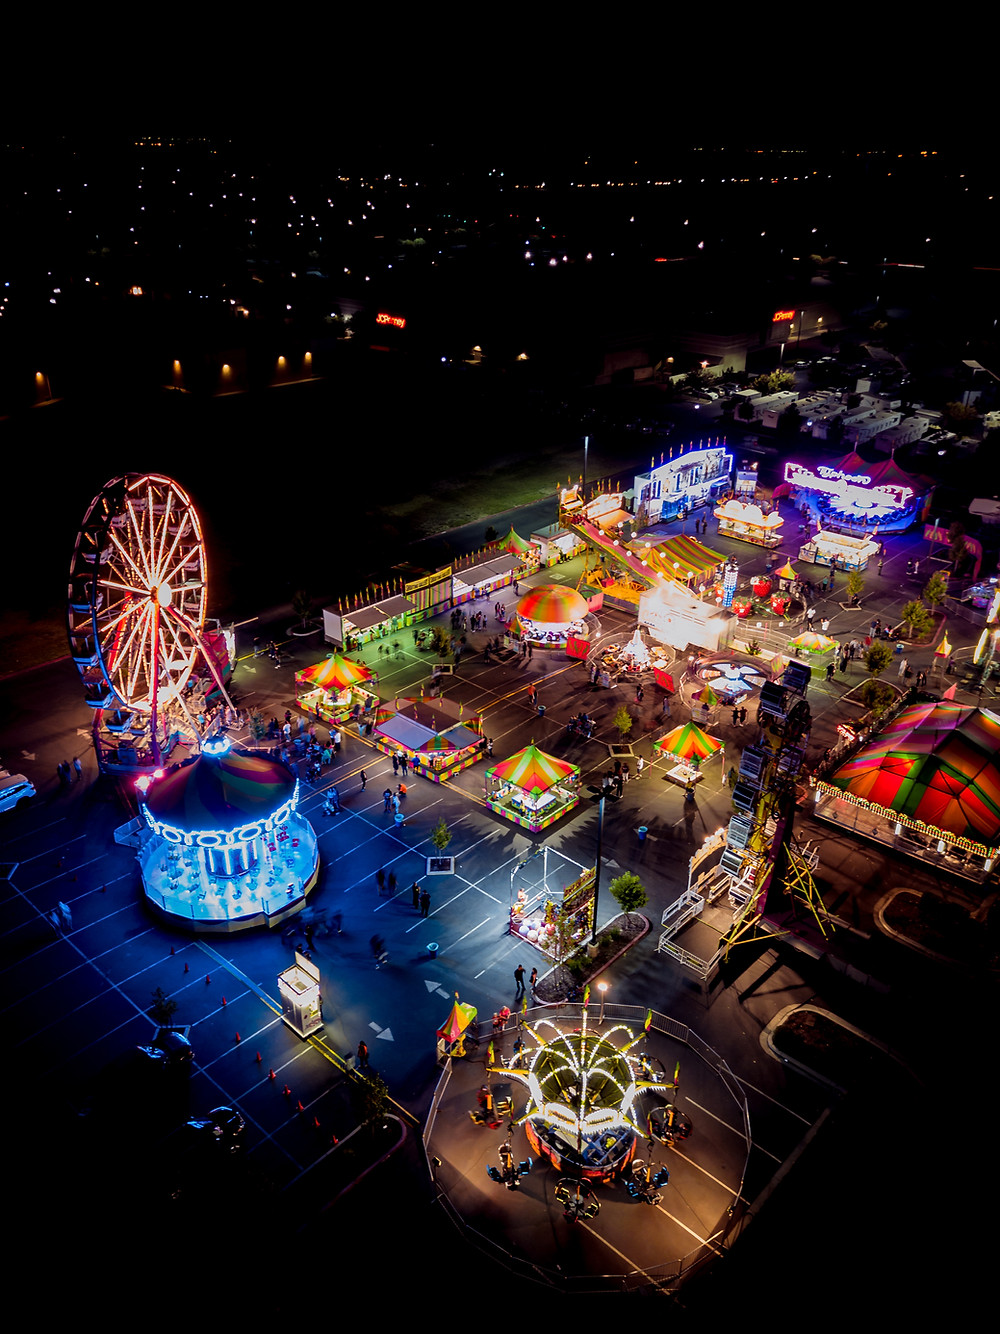 Drone night shot of carnival